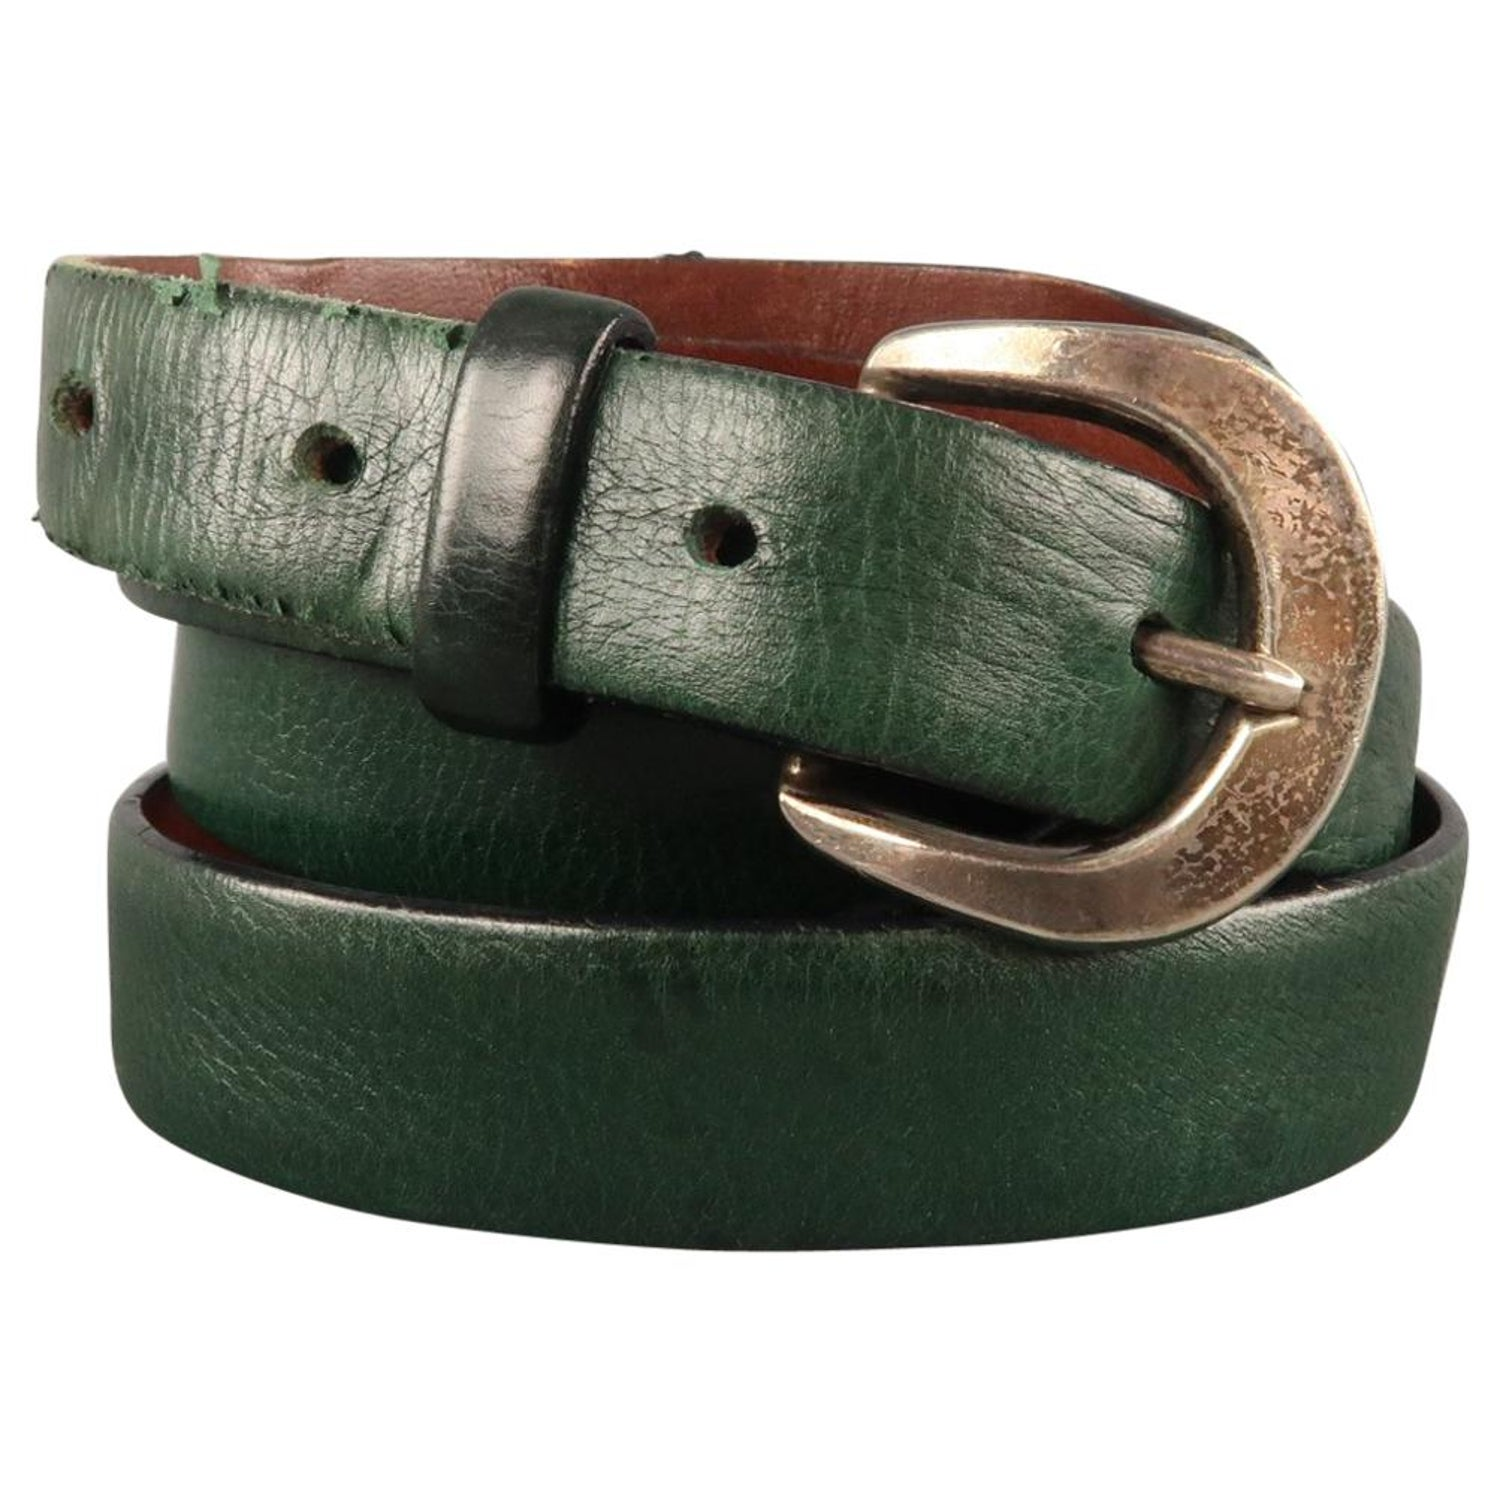 8a0e031b2 MARC JACOBS Size 36 Forest Green Leather Belt at 1stdibs